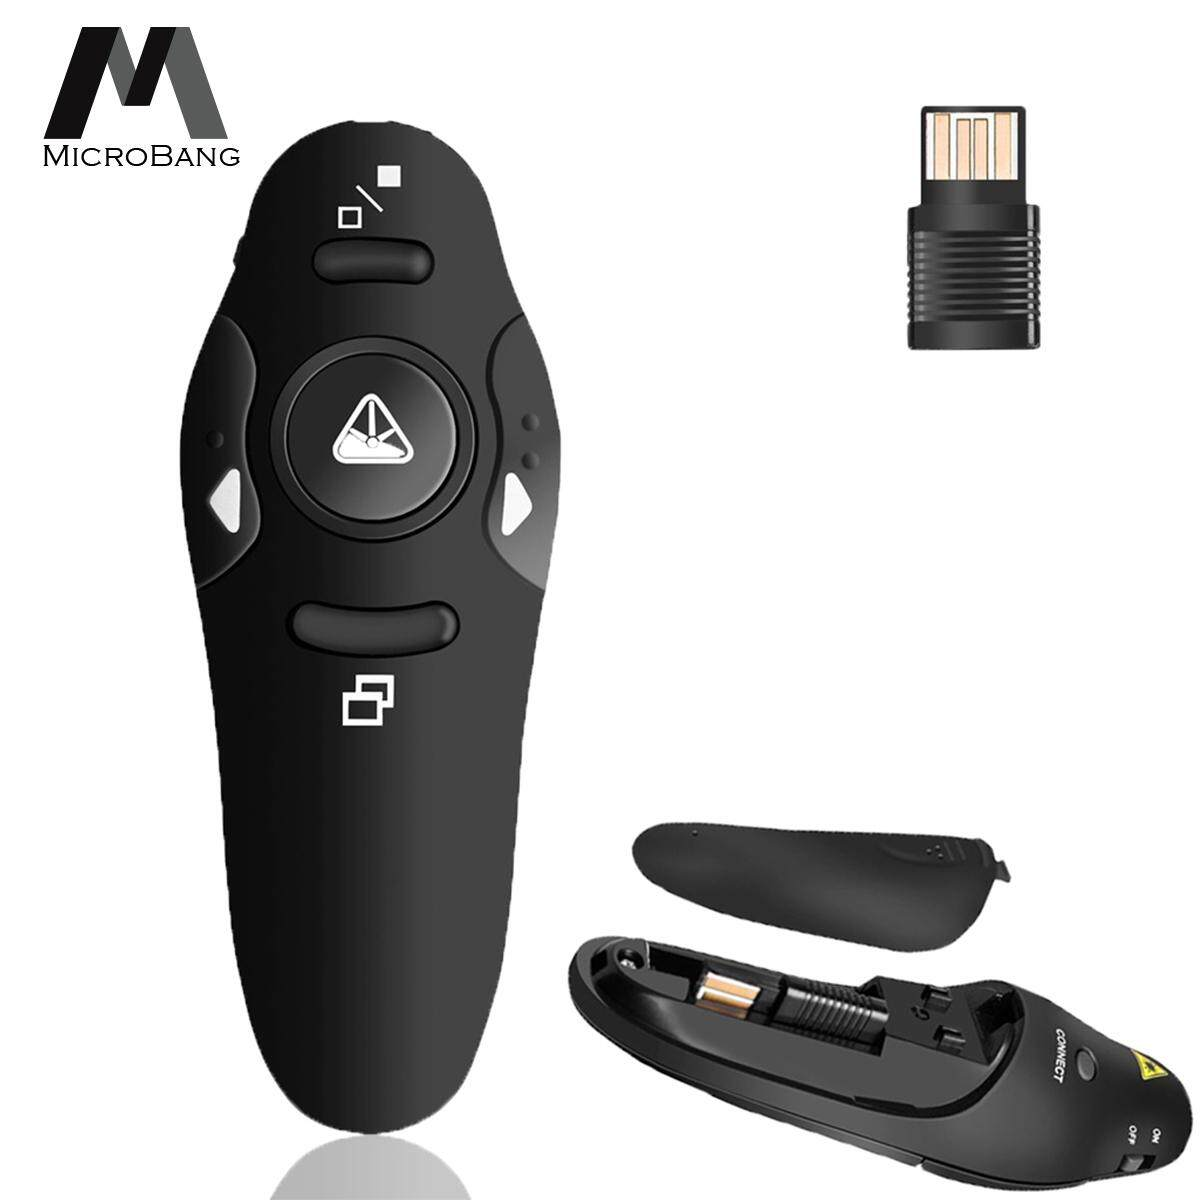 Microbang Wireless Usb Powerpoint Ppt Presenter Remote Control Laser Clicker Flip Pen For Meeting, Report, Lecture And Presentation By Digital Times Square.